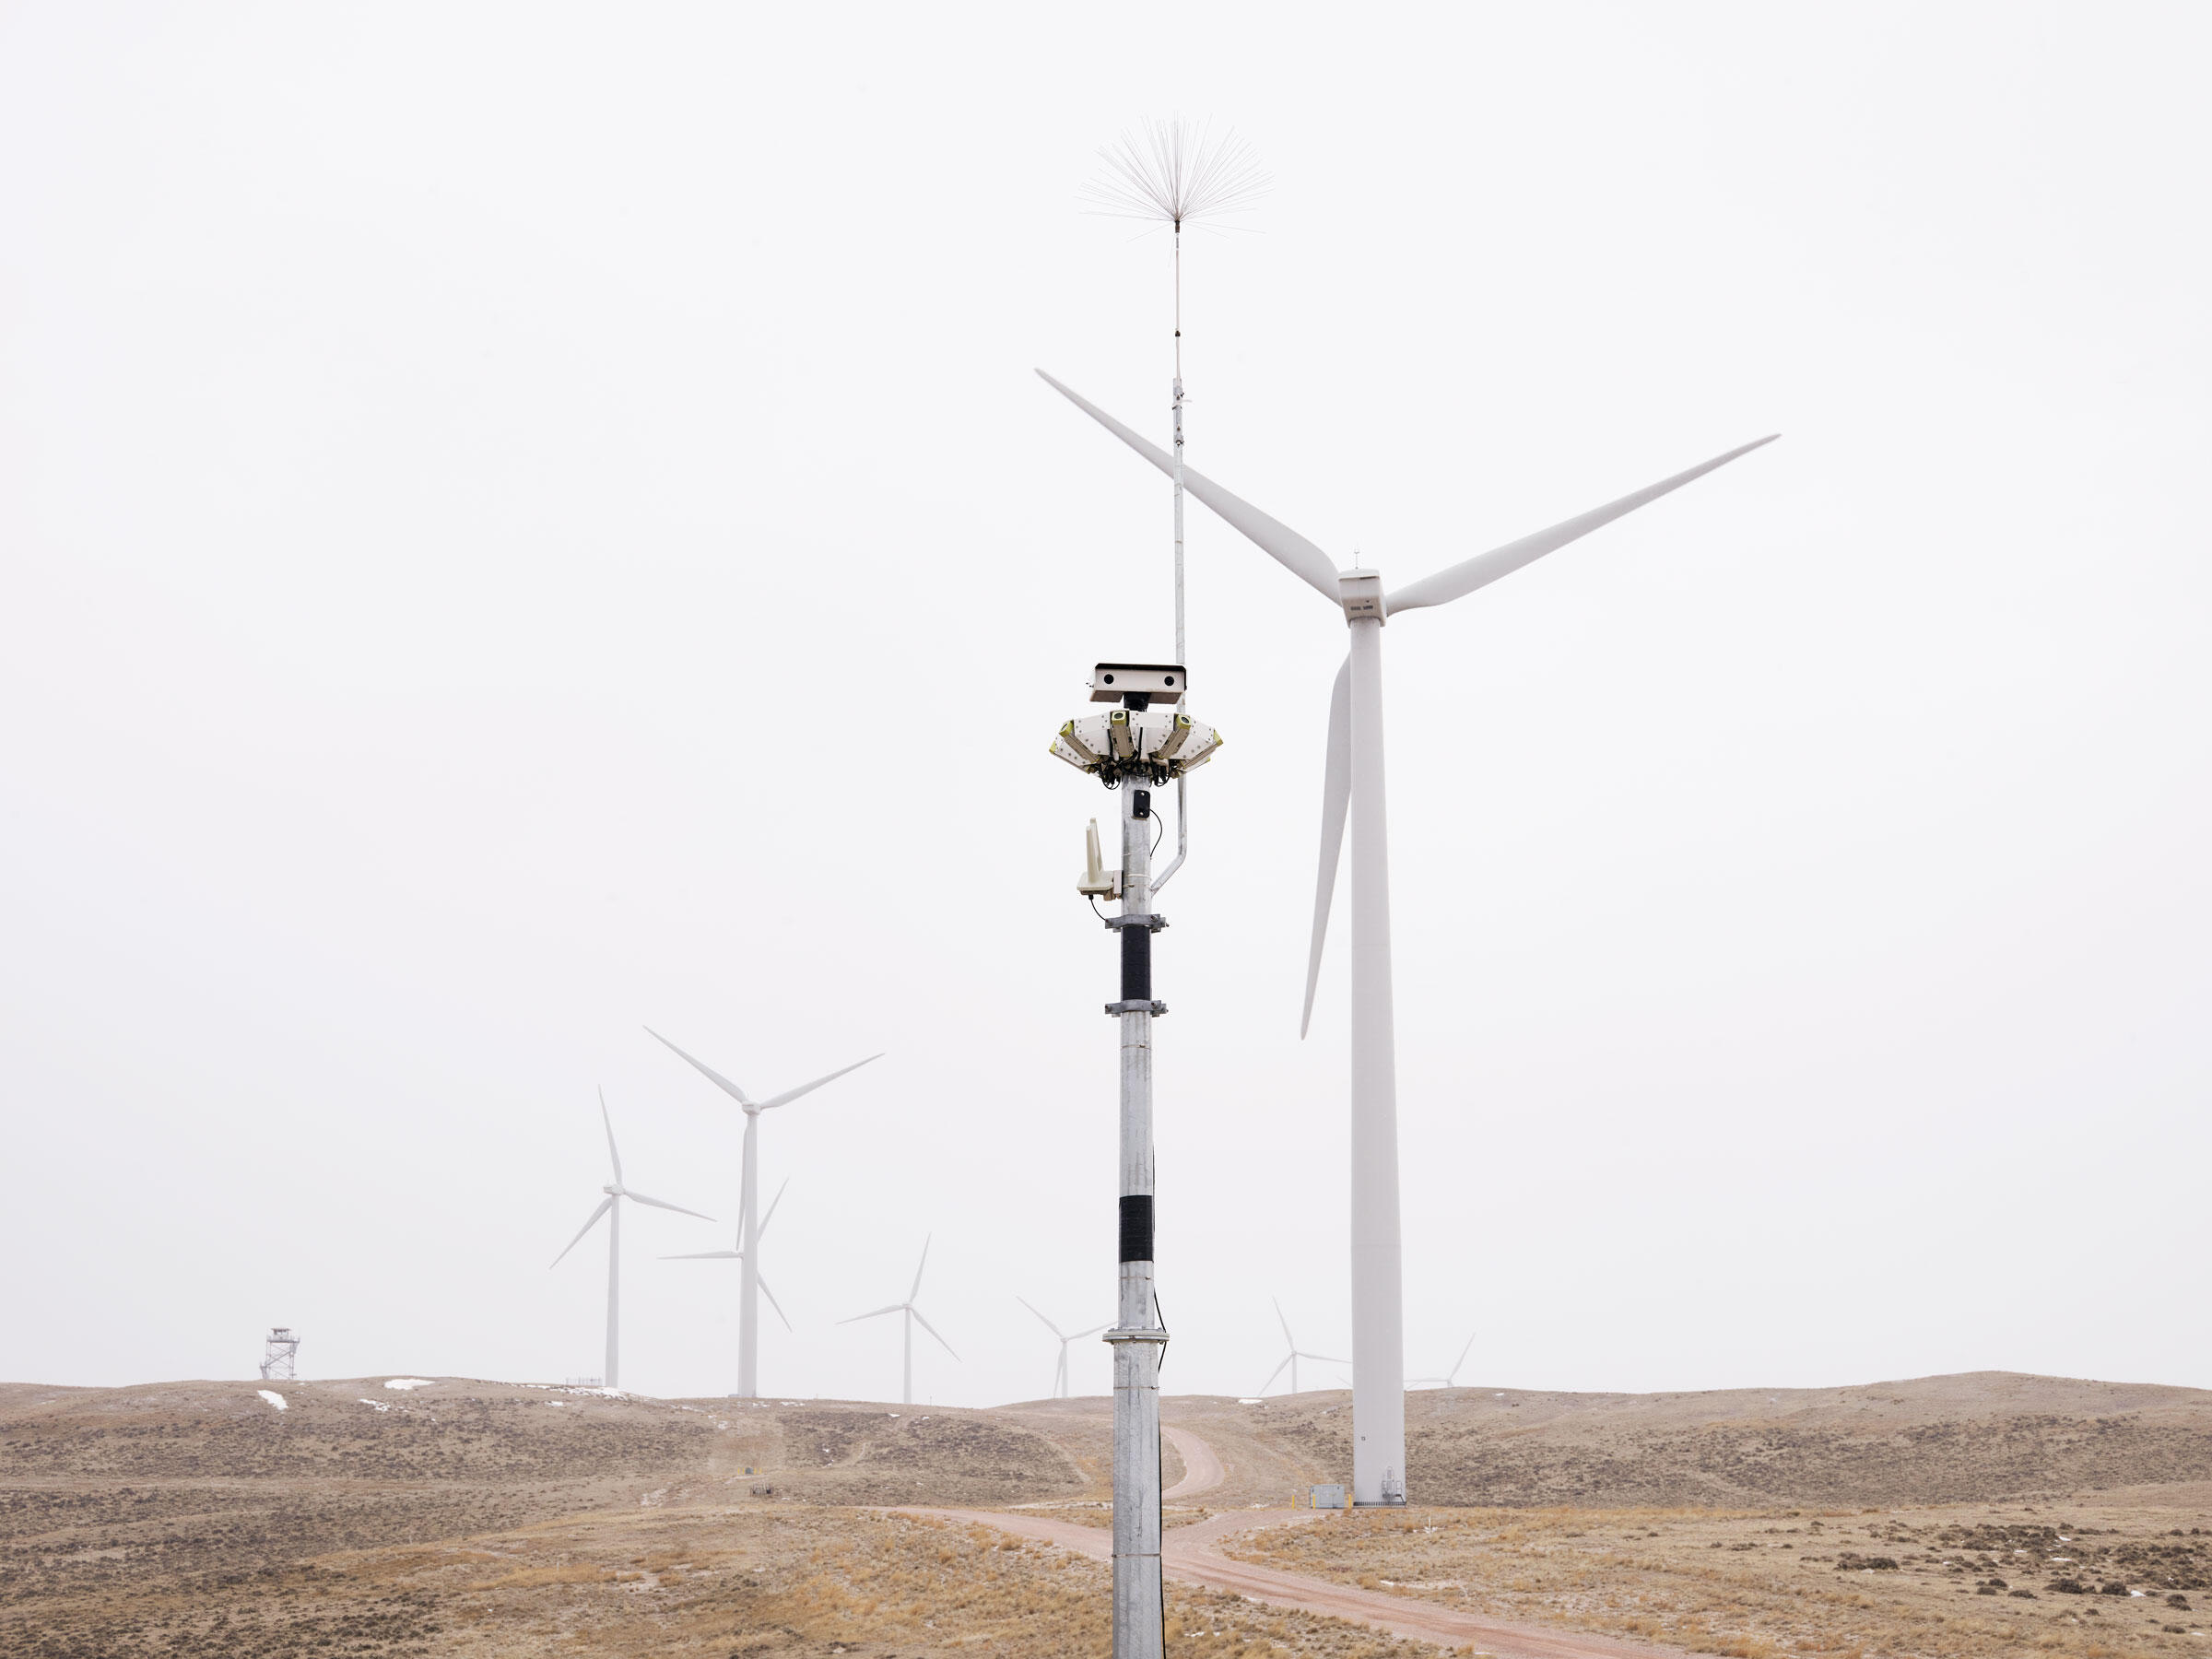 At Duke's Top of the World wind farm outside Casper, Wyoming, an IdentiFlight unit scans the horizon for raptors. Its AI software can pick out eagles at risk of collision and trigger a turbine curtailment. Spencer Lowell